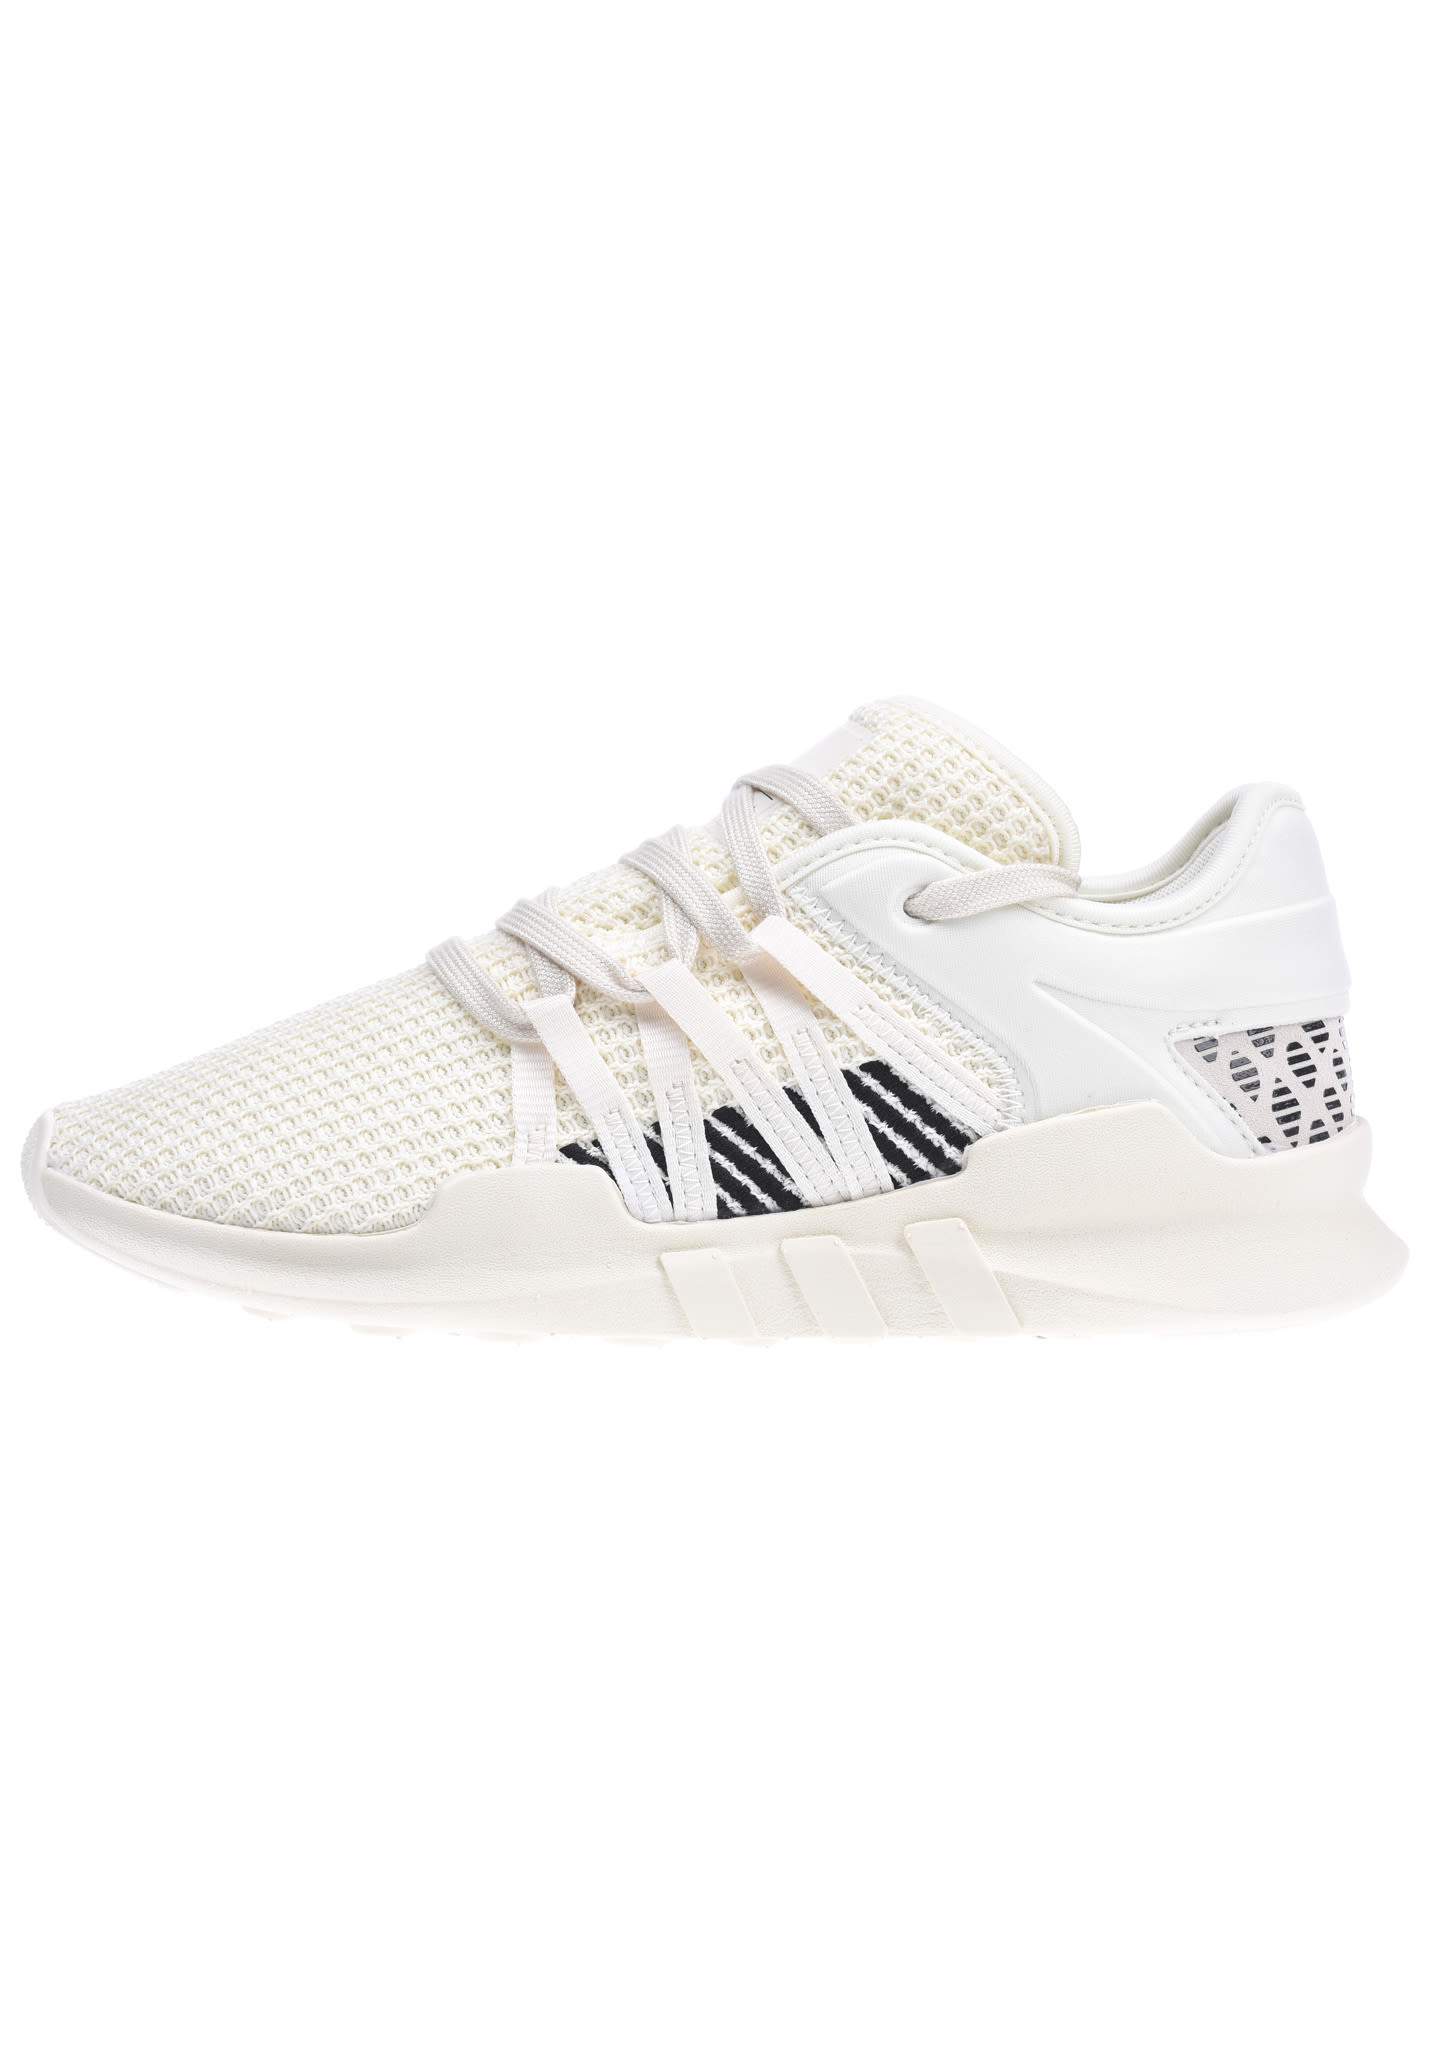 buy online bc948 4533b ADIDAS ORIGINALS Eqt Racing Adv - Sneakers for Women - White